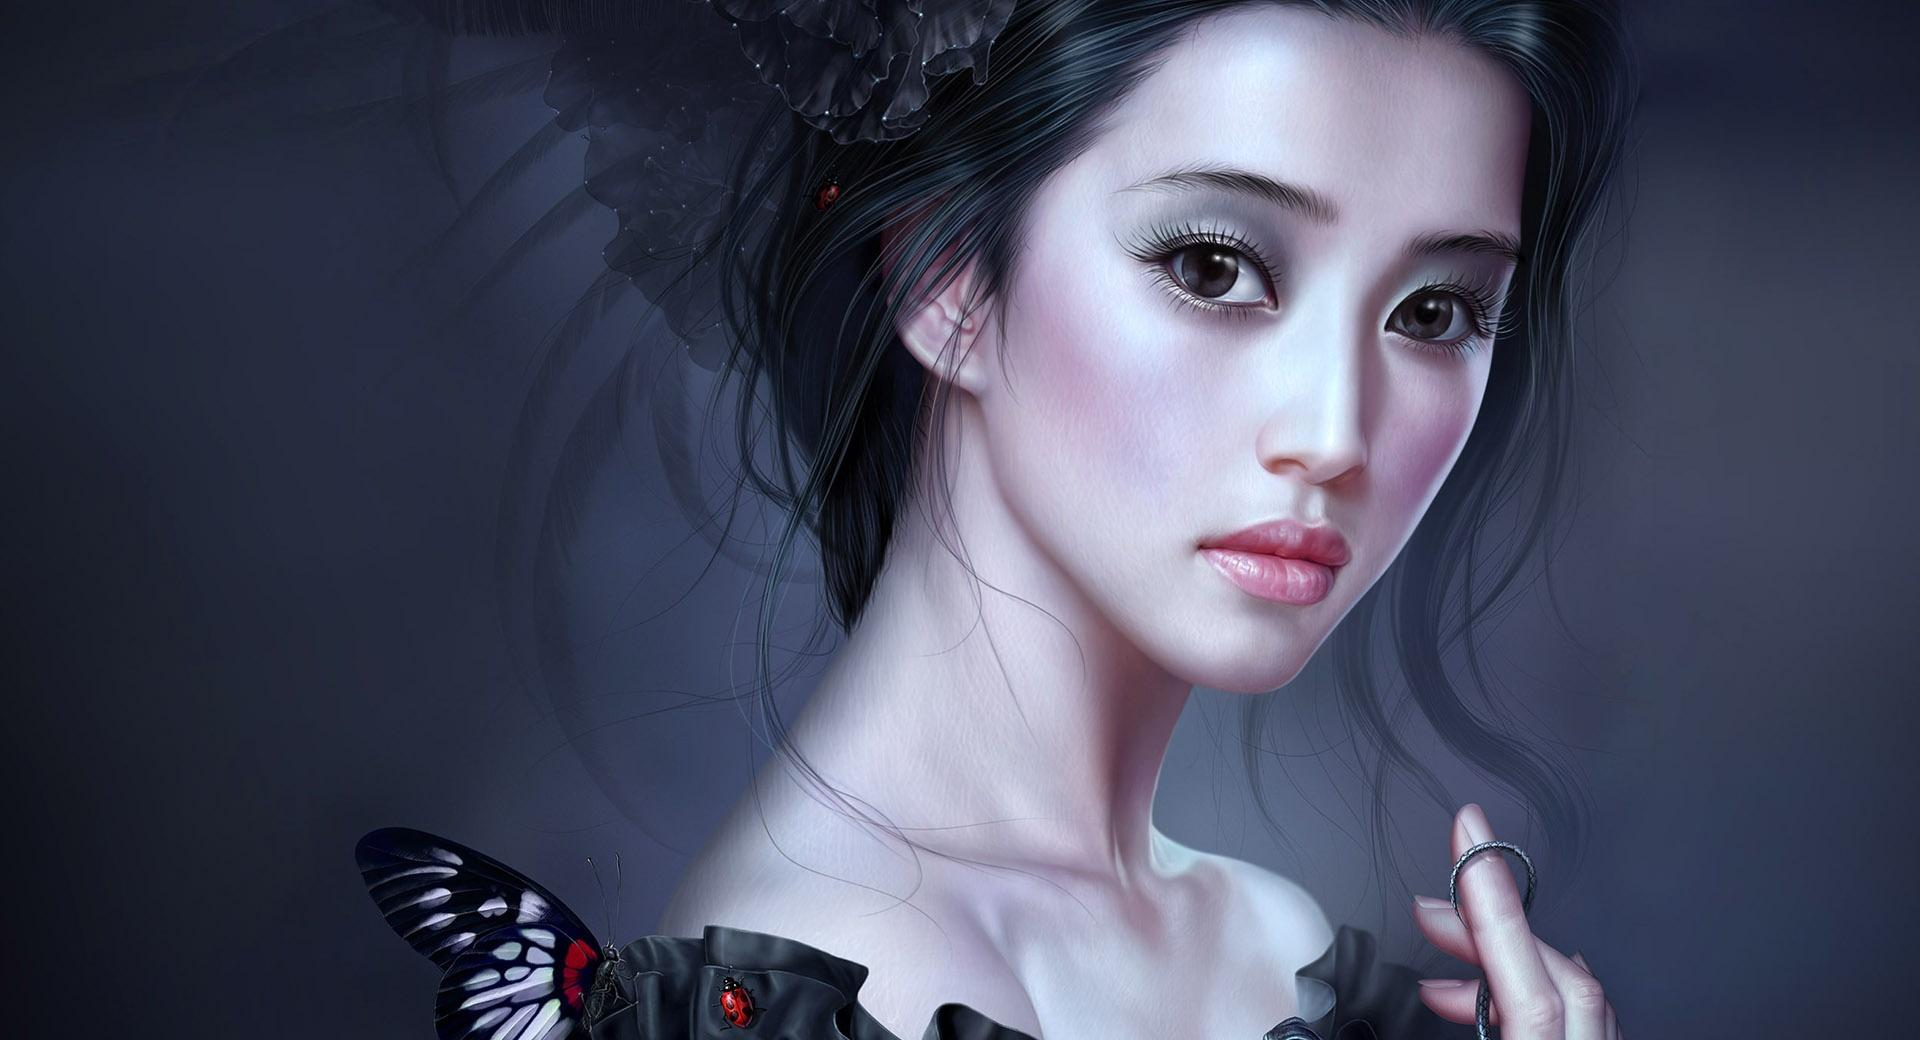 Woman In Black Painting wallpapers HD quality